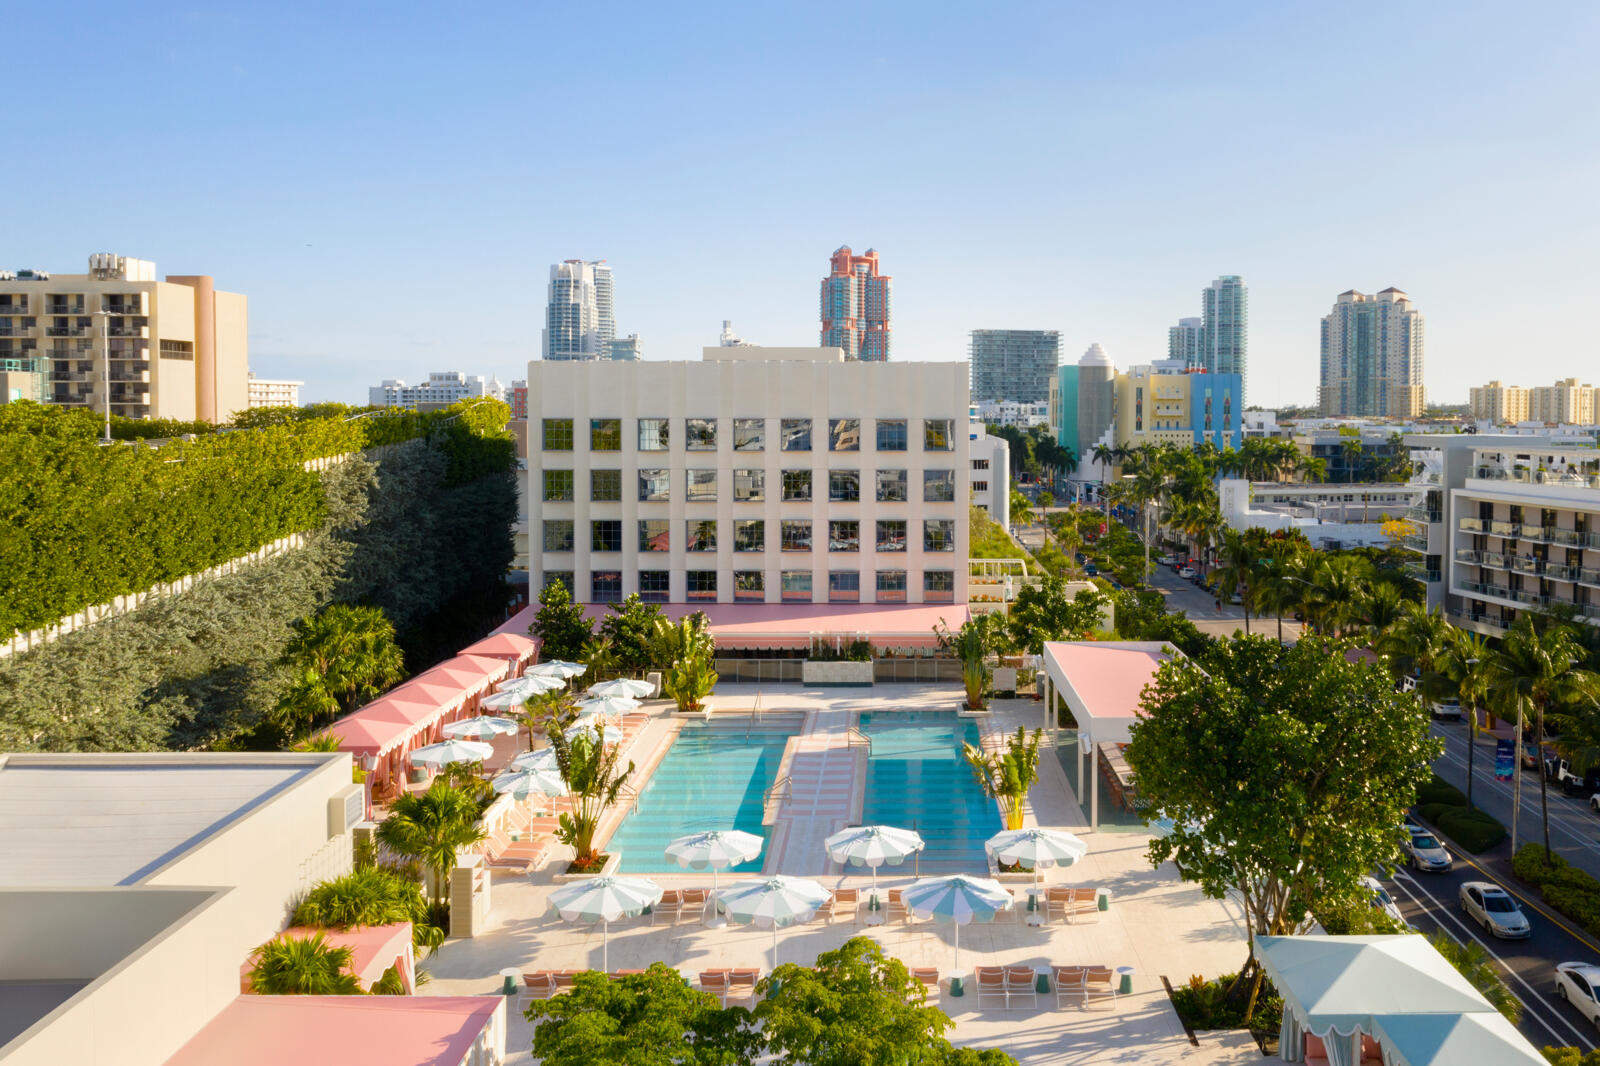 The Goodtime Hotel in South Beach, FL